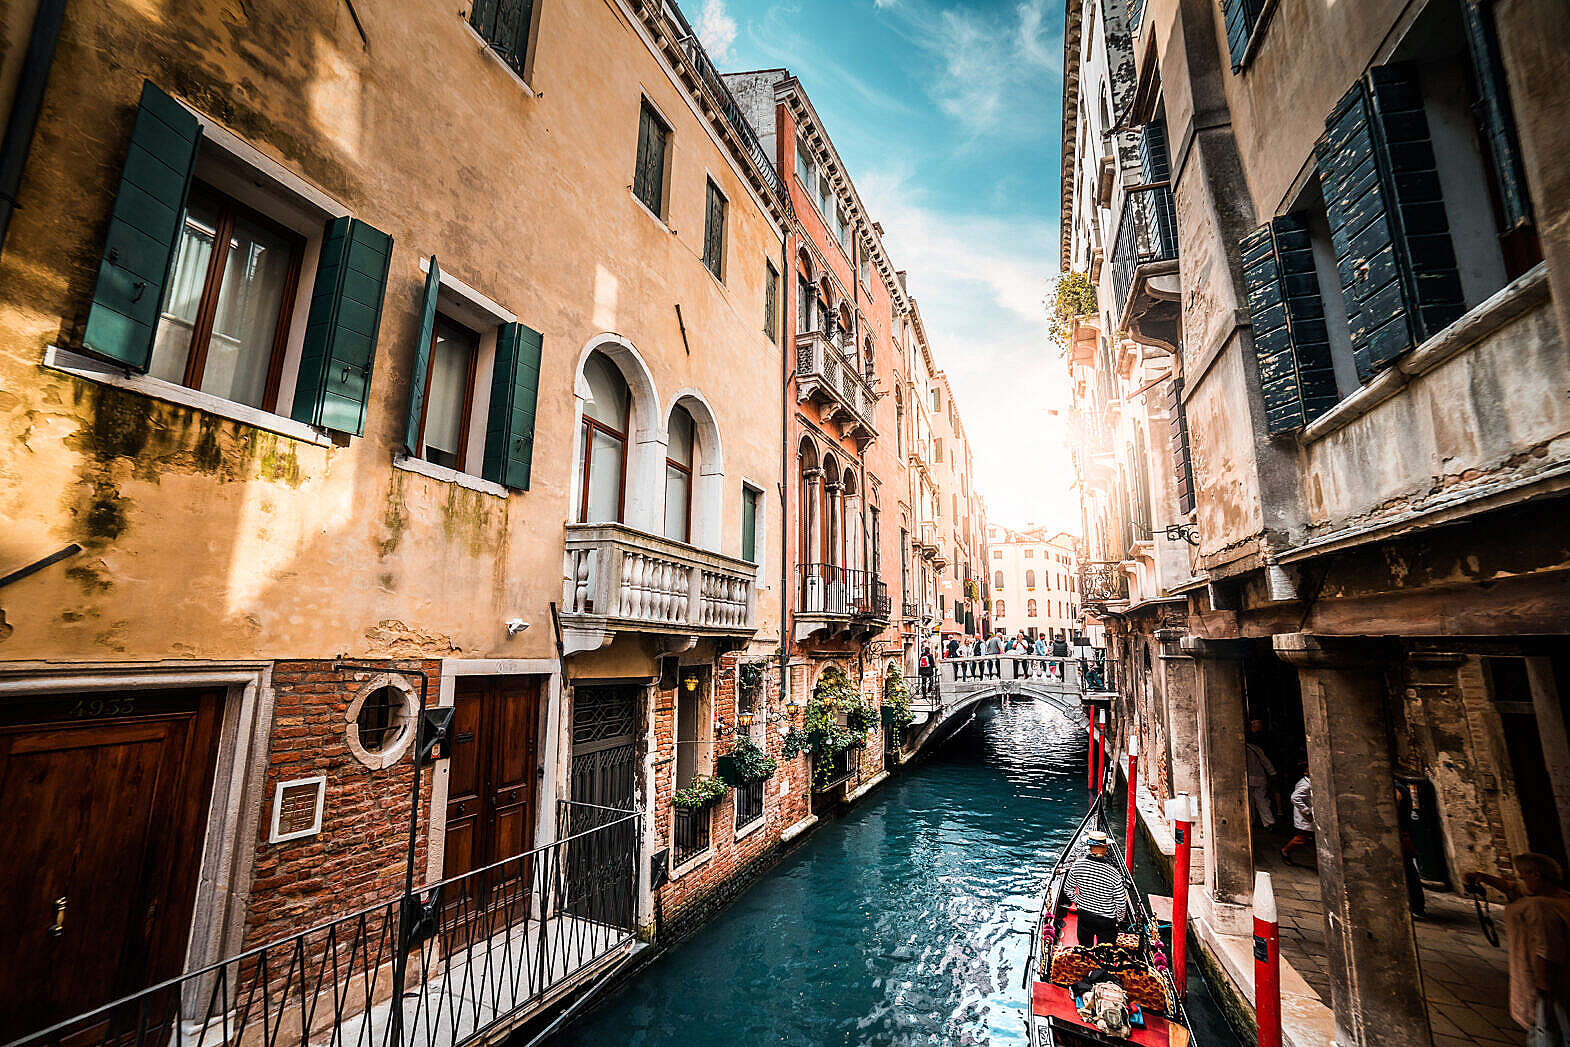 Venice Streets and Canals Free Stock Photo Download